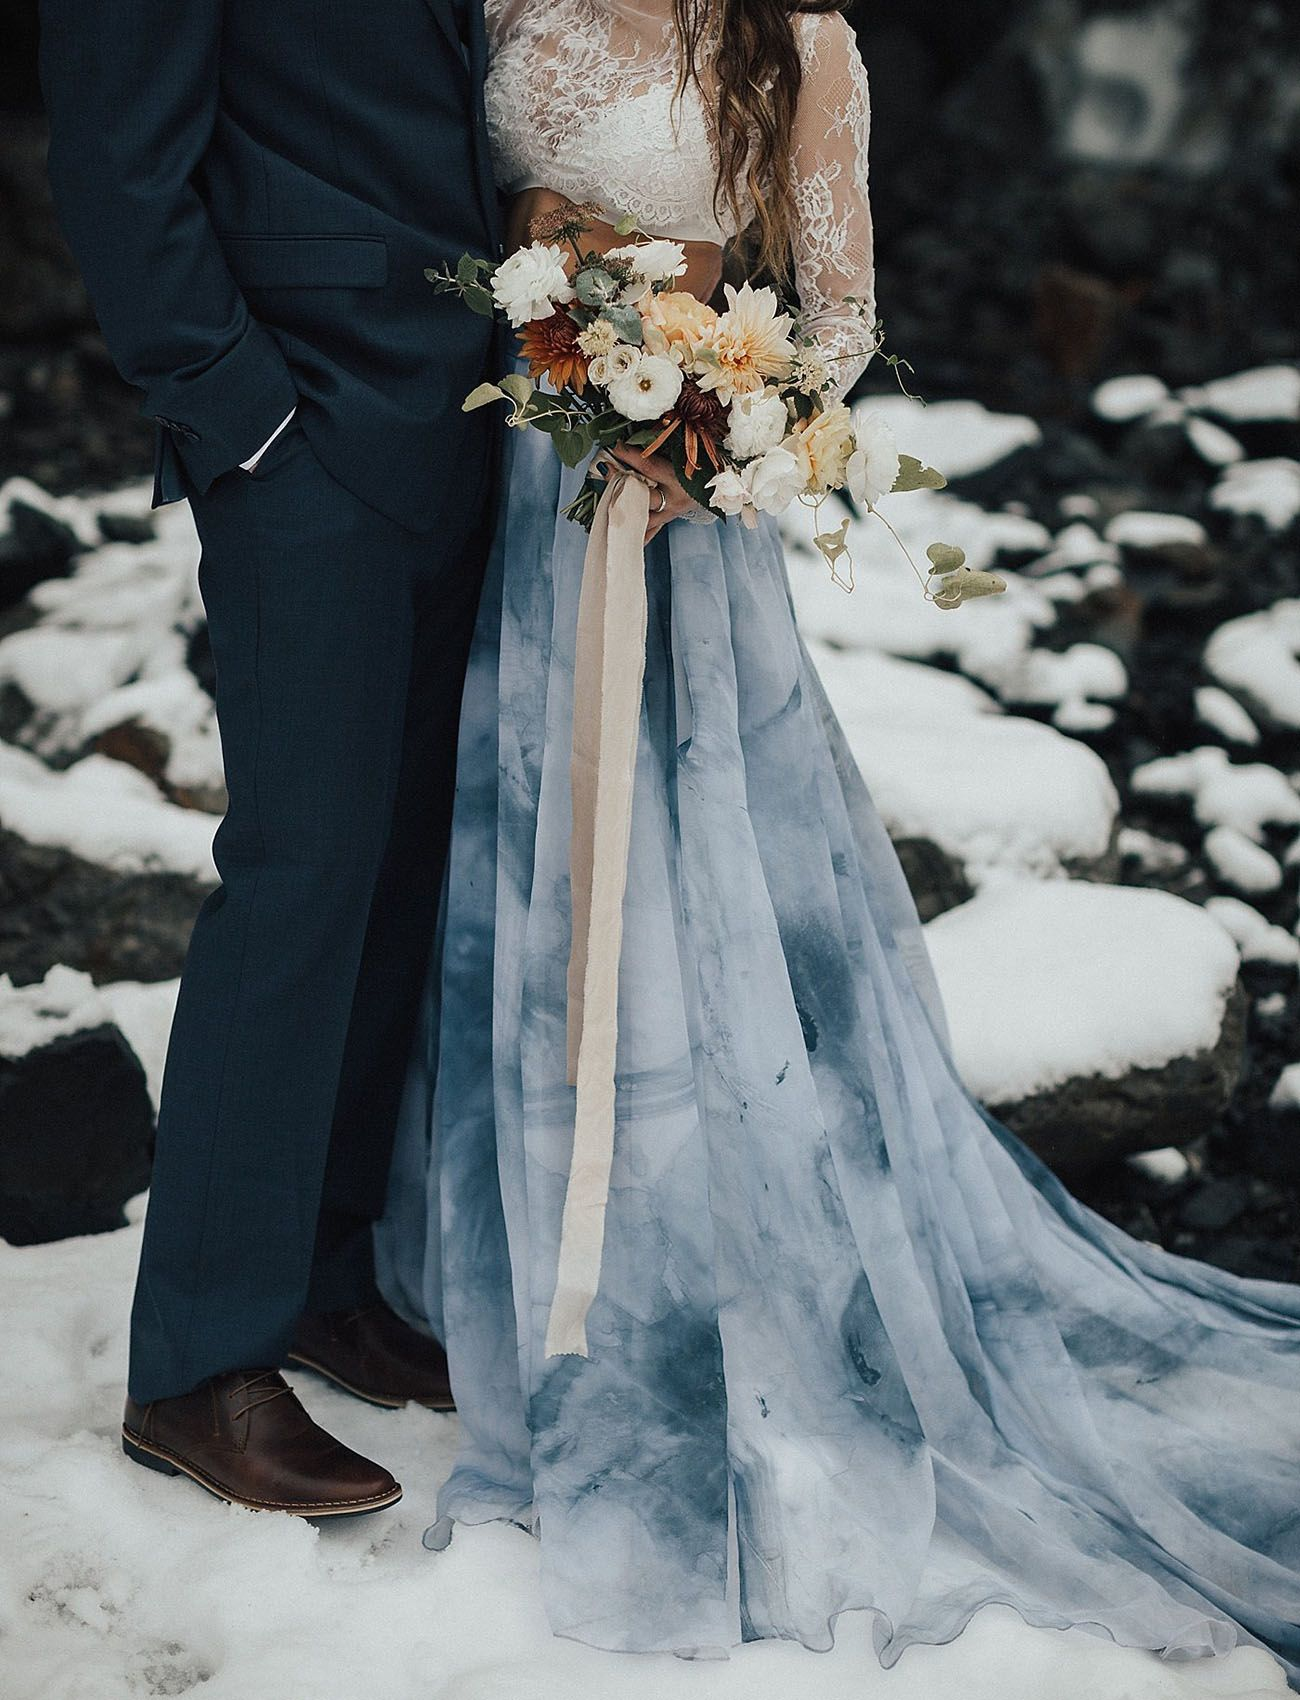 A Winter Elopement in an Ice Cave | Elopement inspiration, Blue tie ...